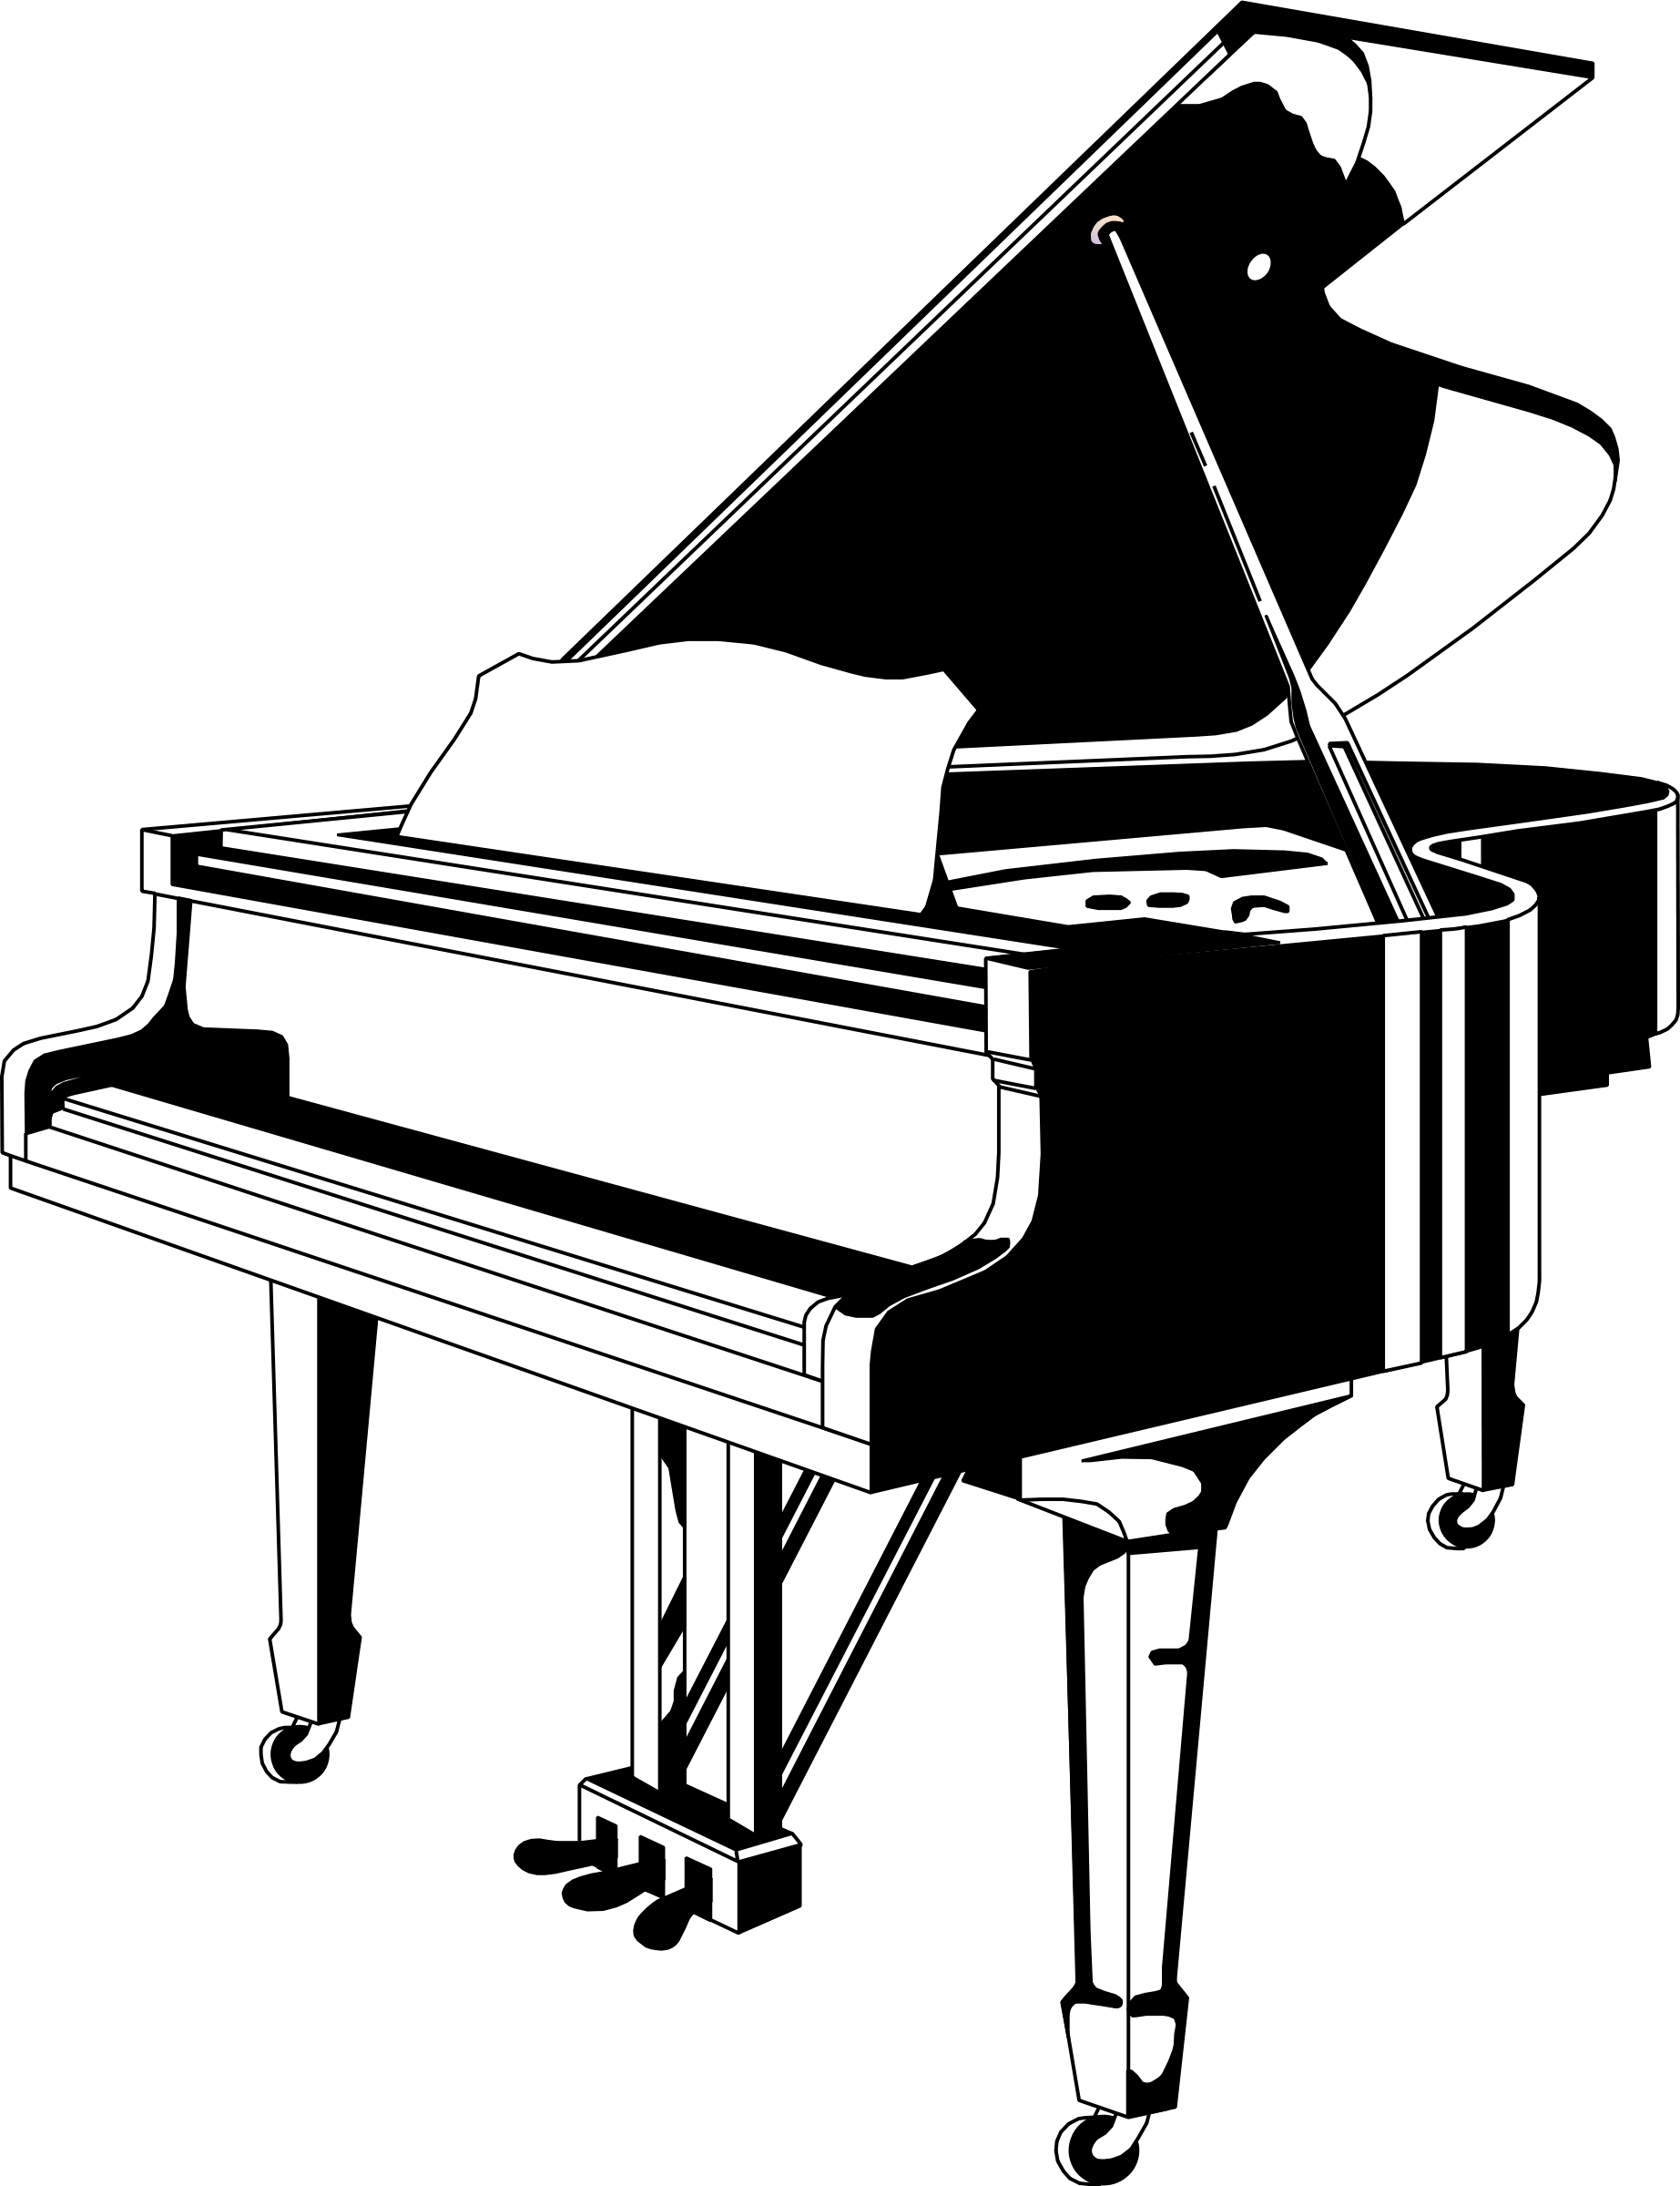 piano clipart black and white clipart panda free piano clipart black and white piano clip art free images